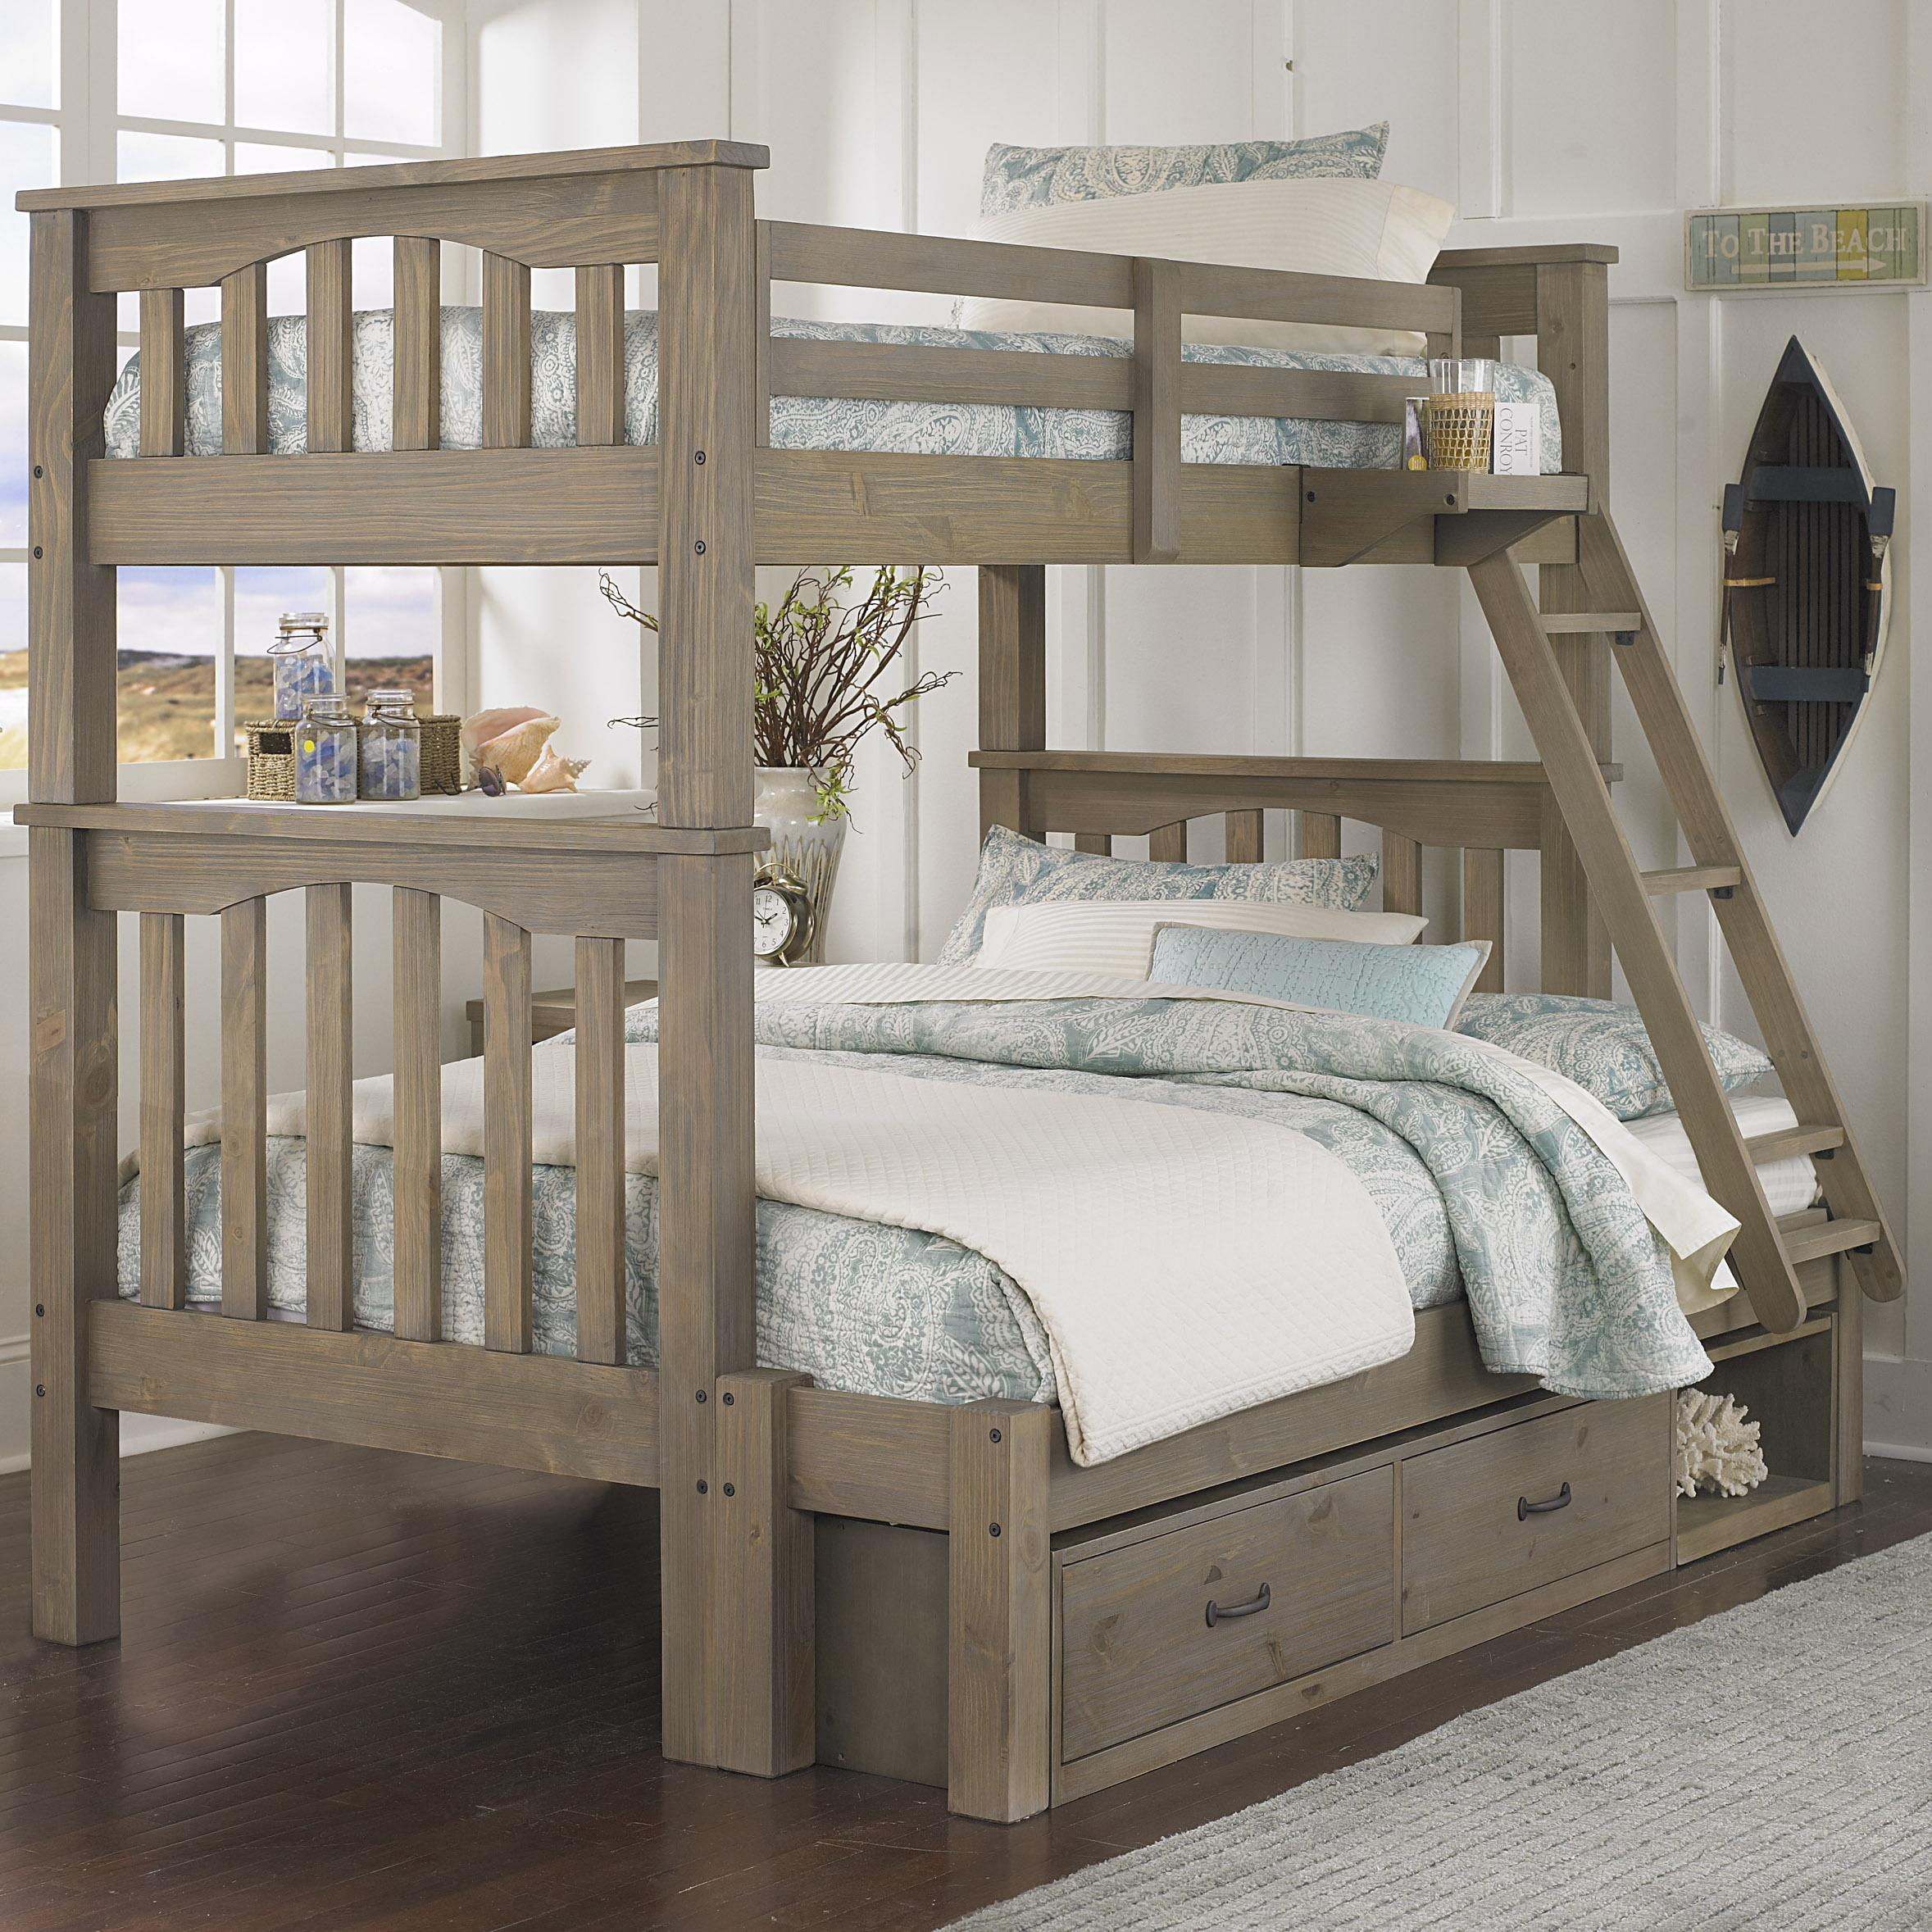 NE Kids Highlands Twin Over Full Harper Bunk Bed with Storage - Item Number: 10055+10590